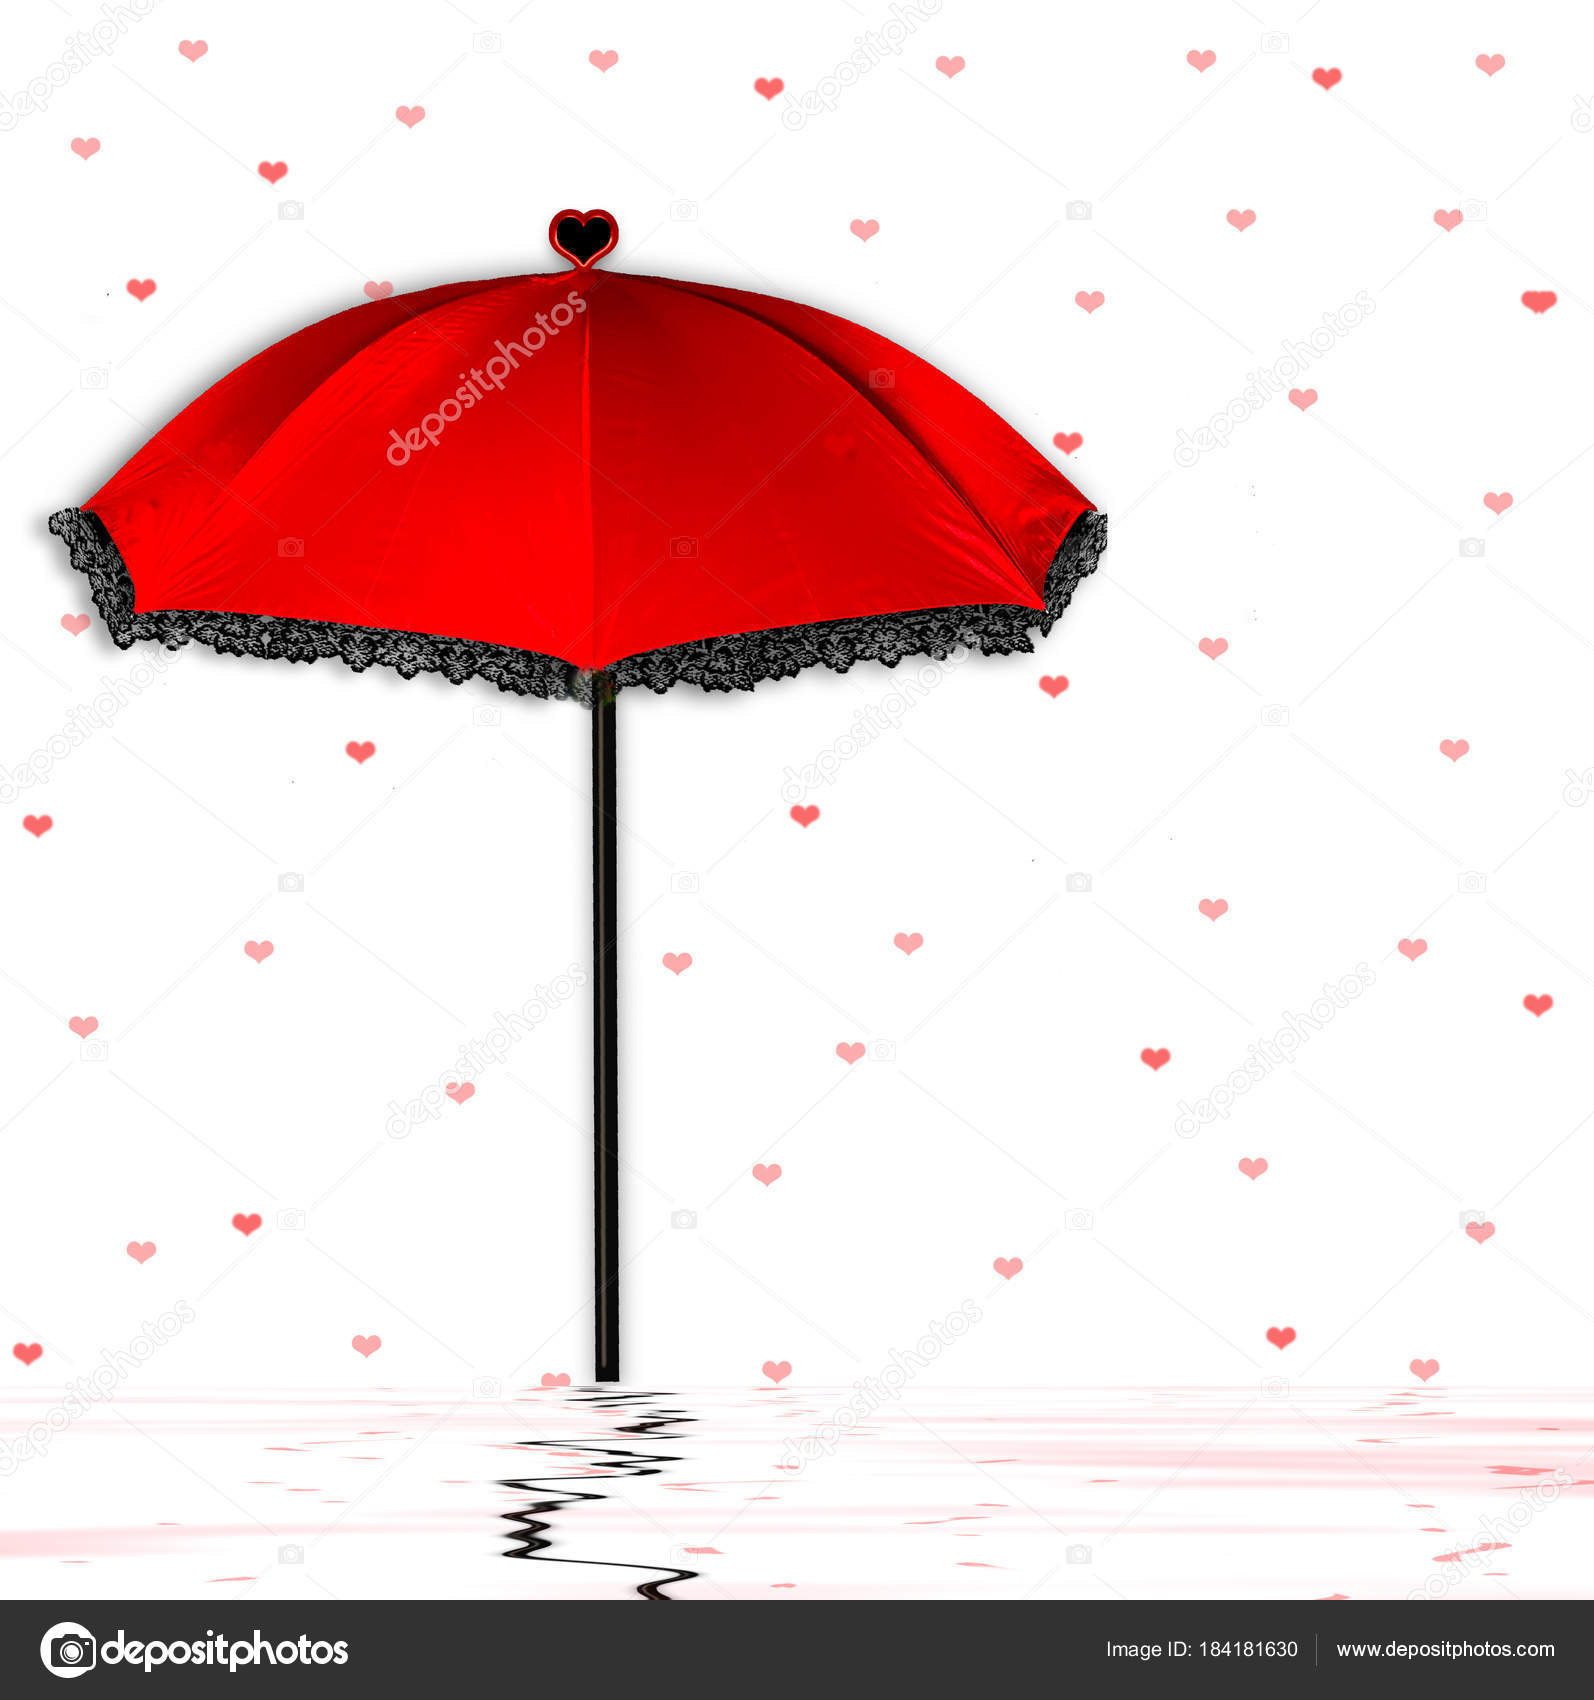 Fun Background With Red And Black Unbrella With Tiny Red Hearts Floating Around It And Below Water With Reflections Il Ration Background